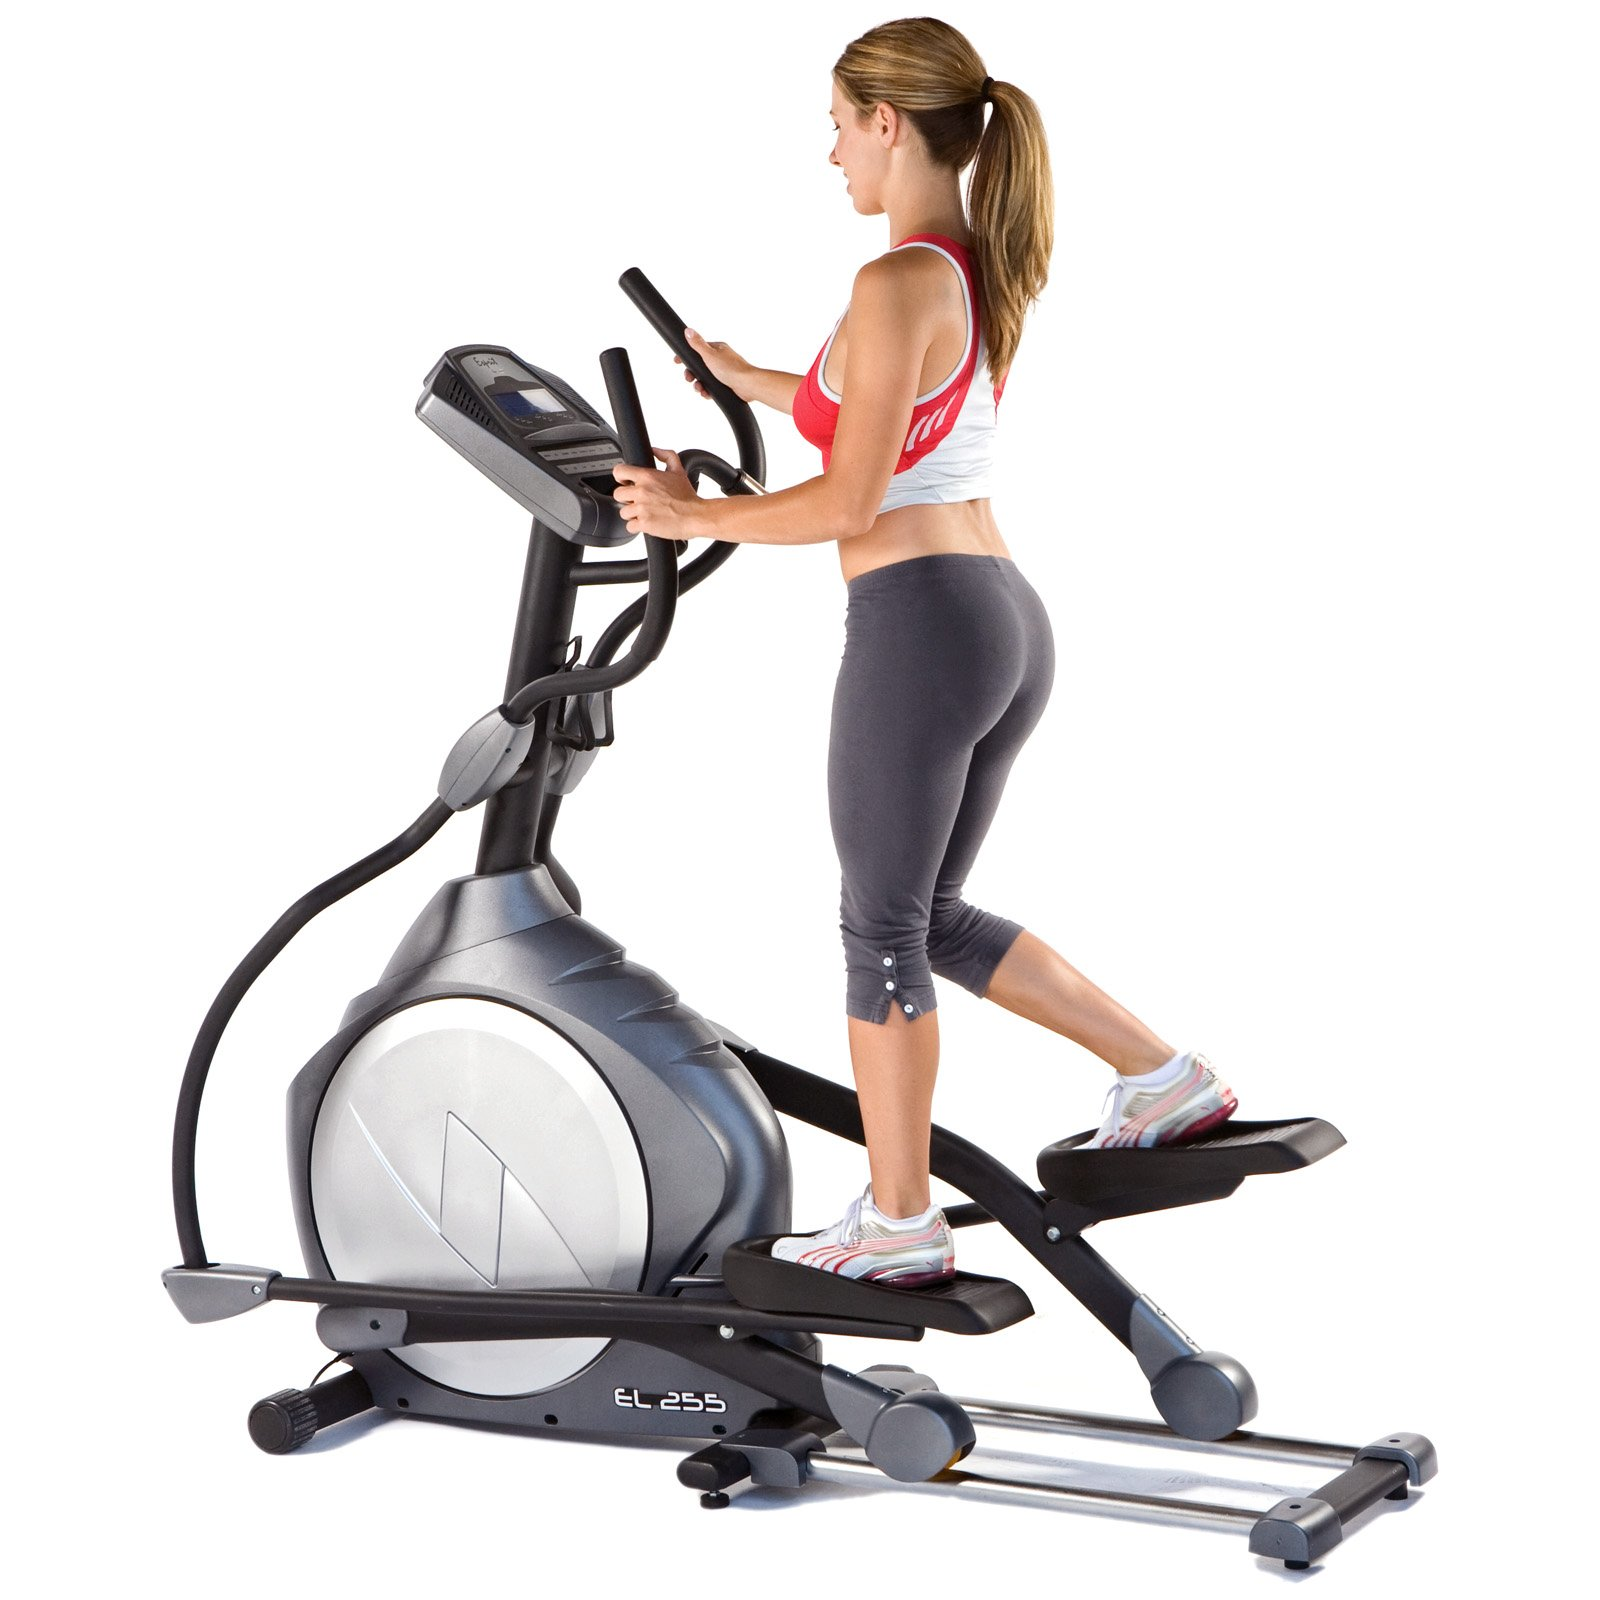 Exercise Fitness: My Talks About Healthy Life: Some Latest Fitness Equipments